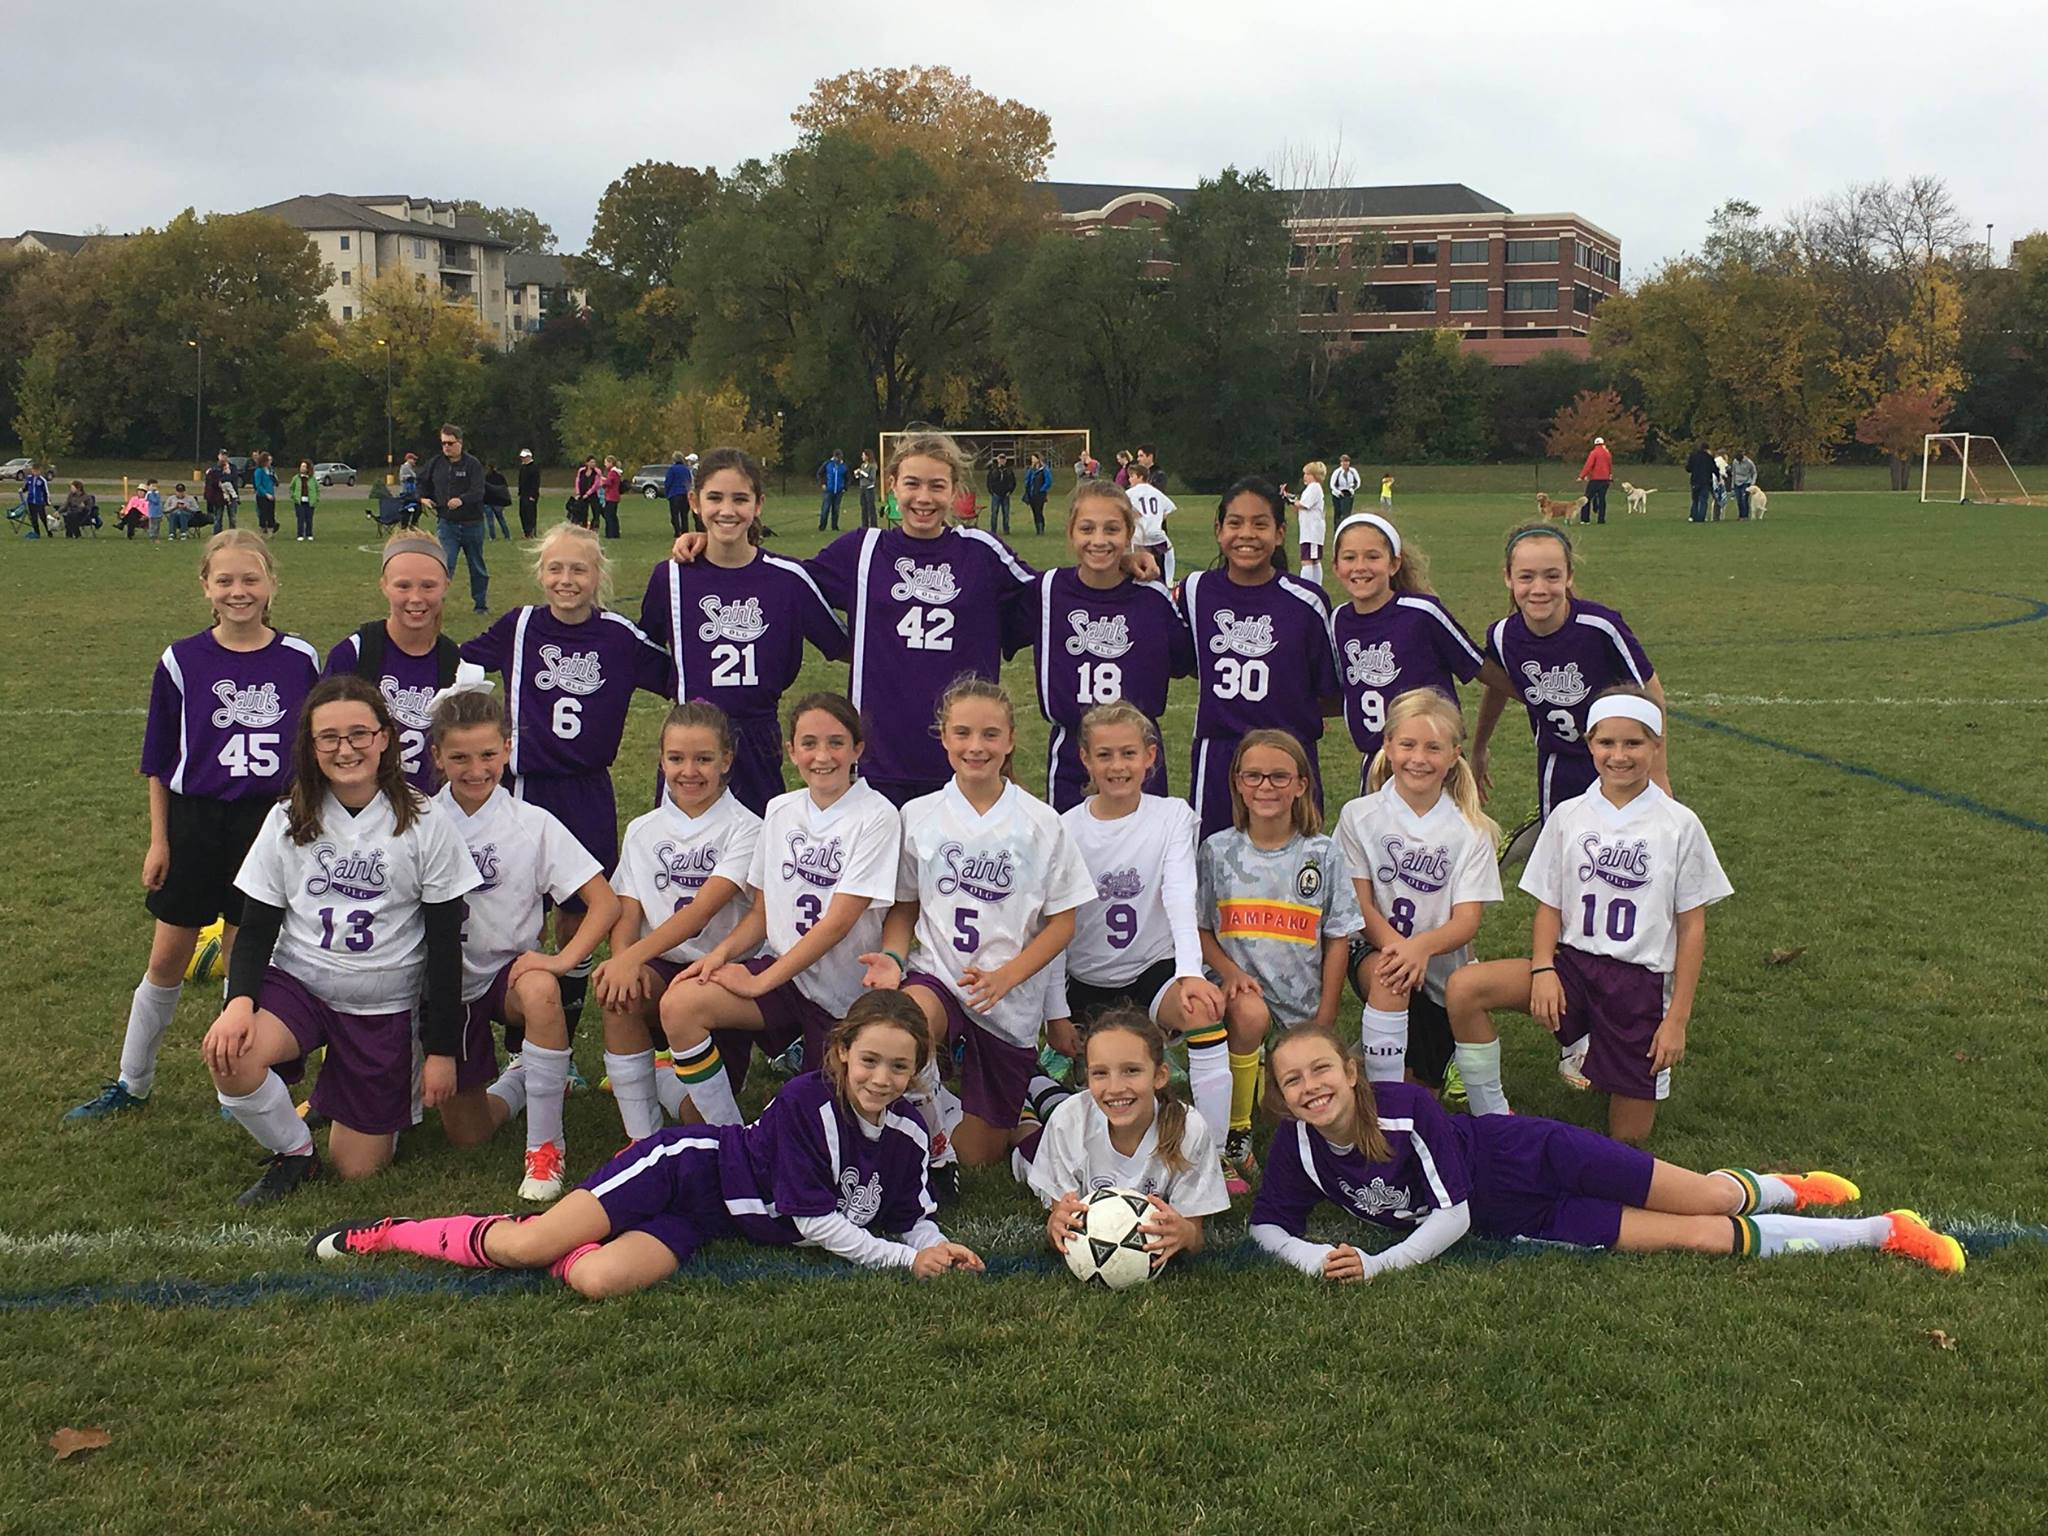 Our Lady of Grace School Soccer